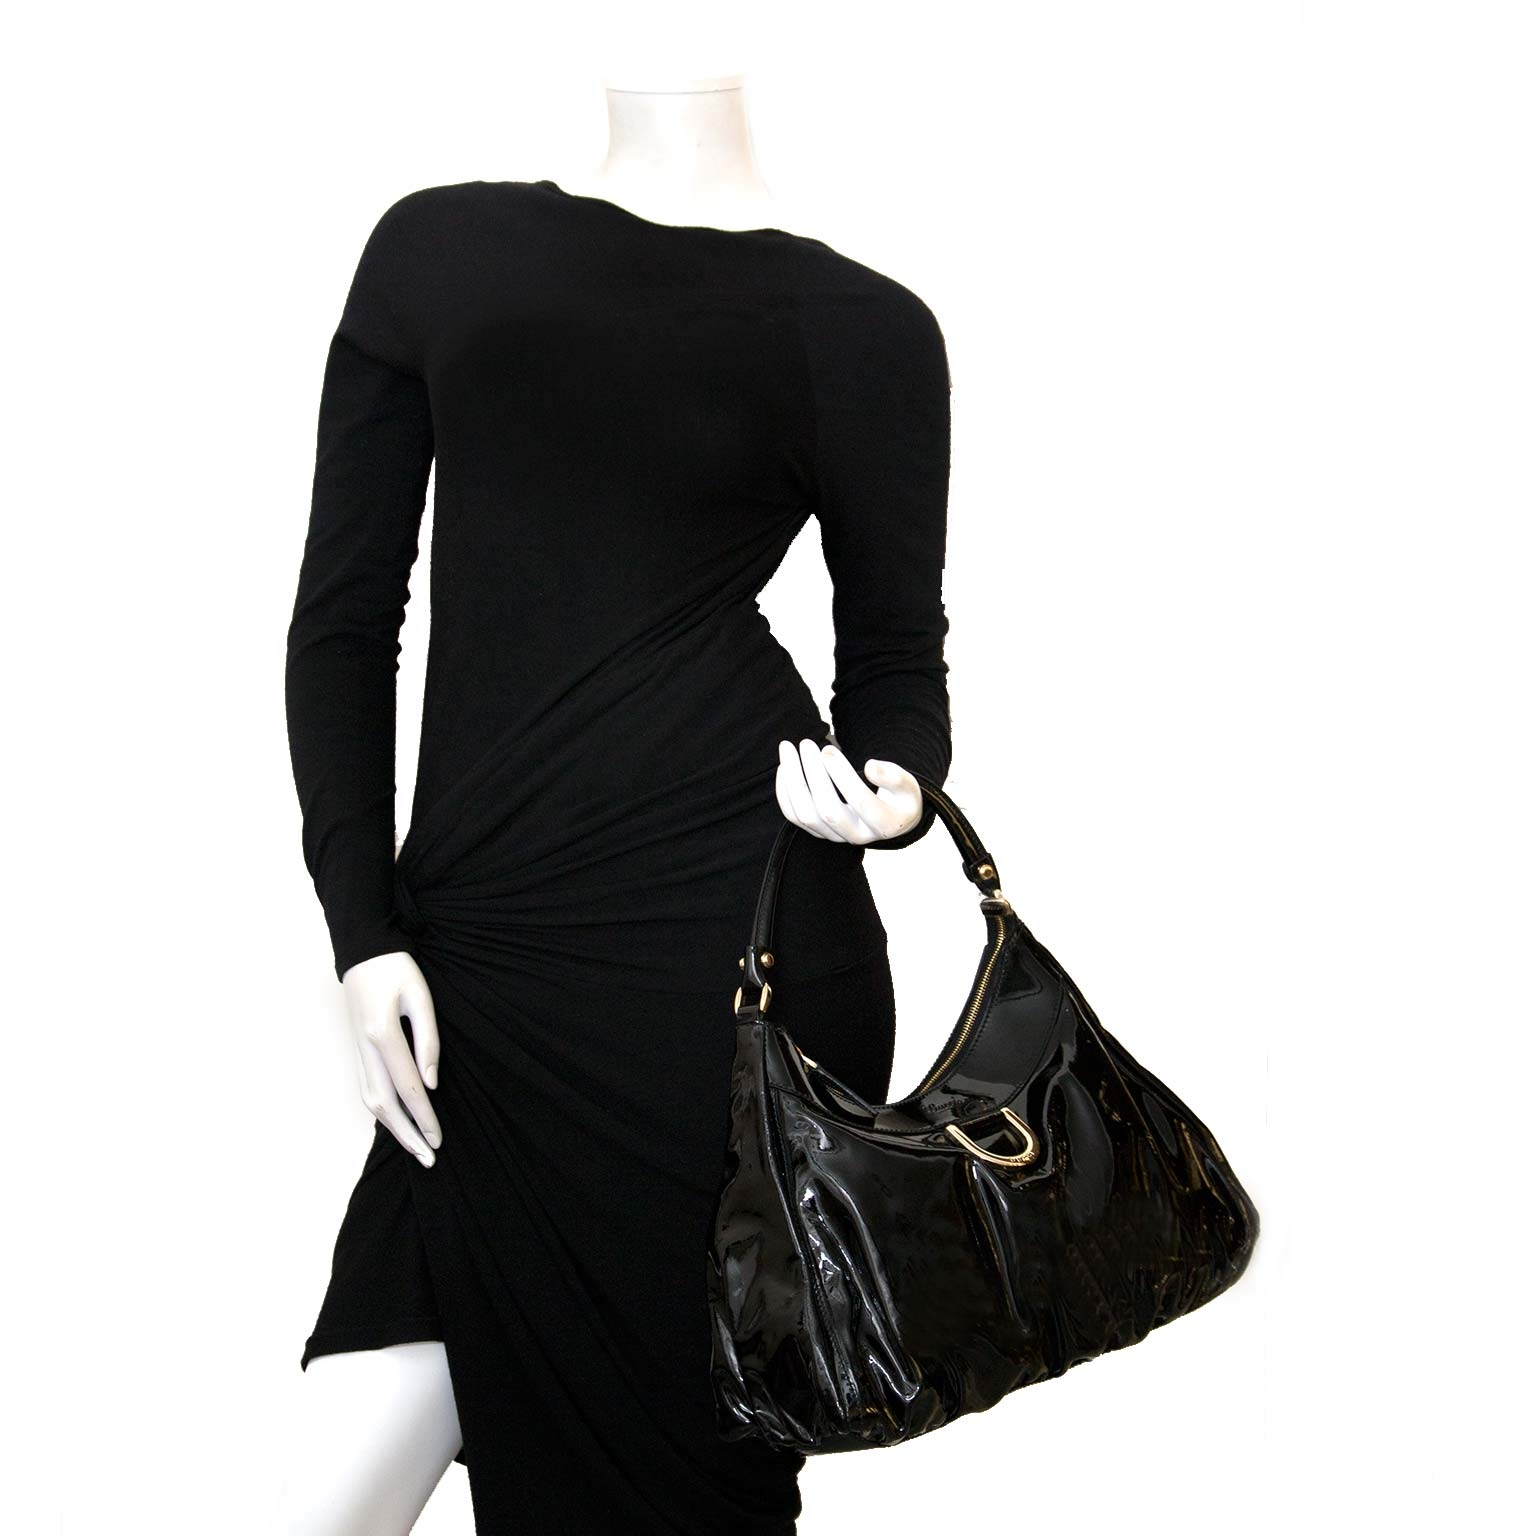 gucci abbey patent black shoulder bag now for sale at labellov vintage fashion webshop belgium